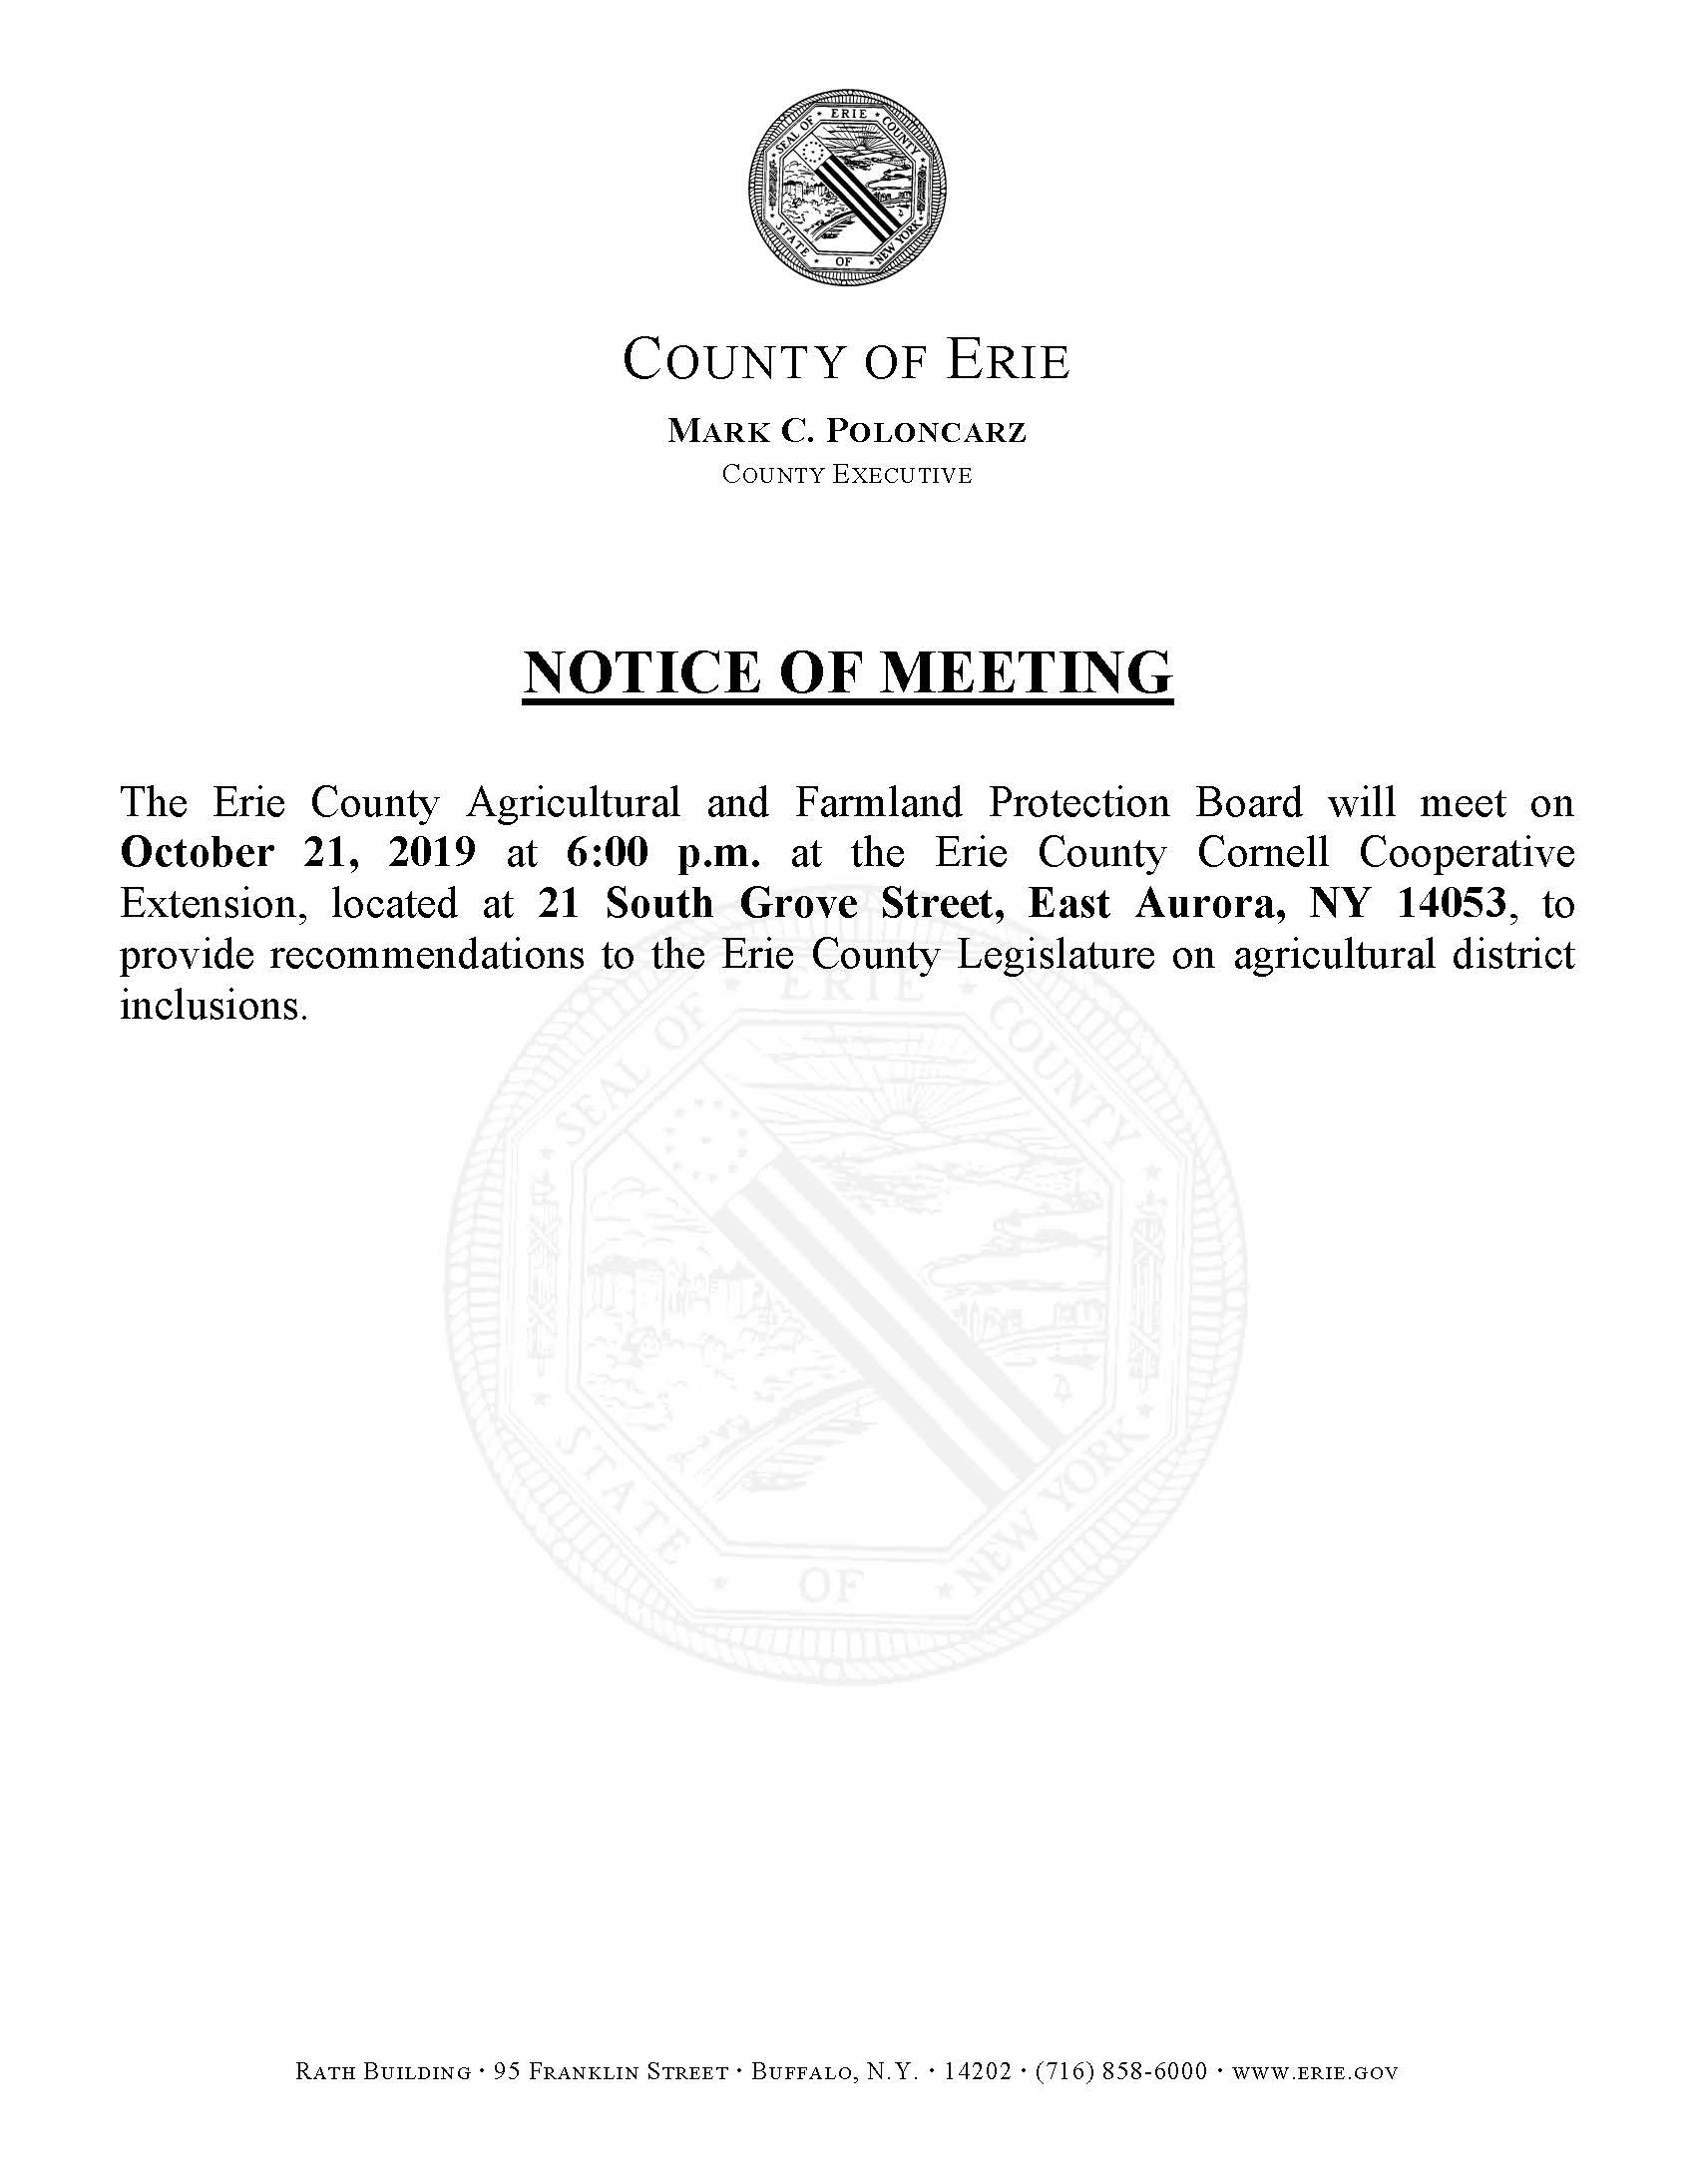 Agriculture and Farmland Protection Meeting Notice